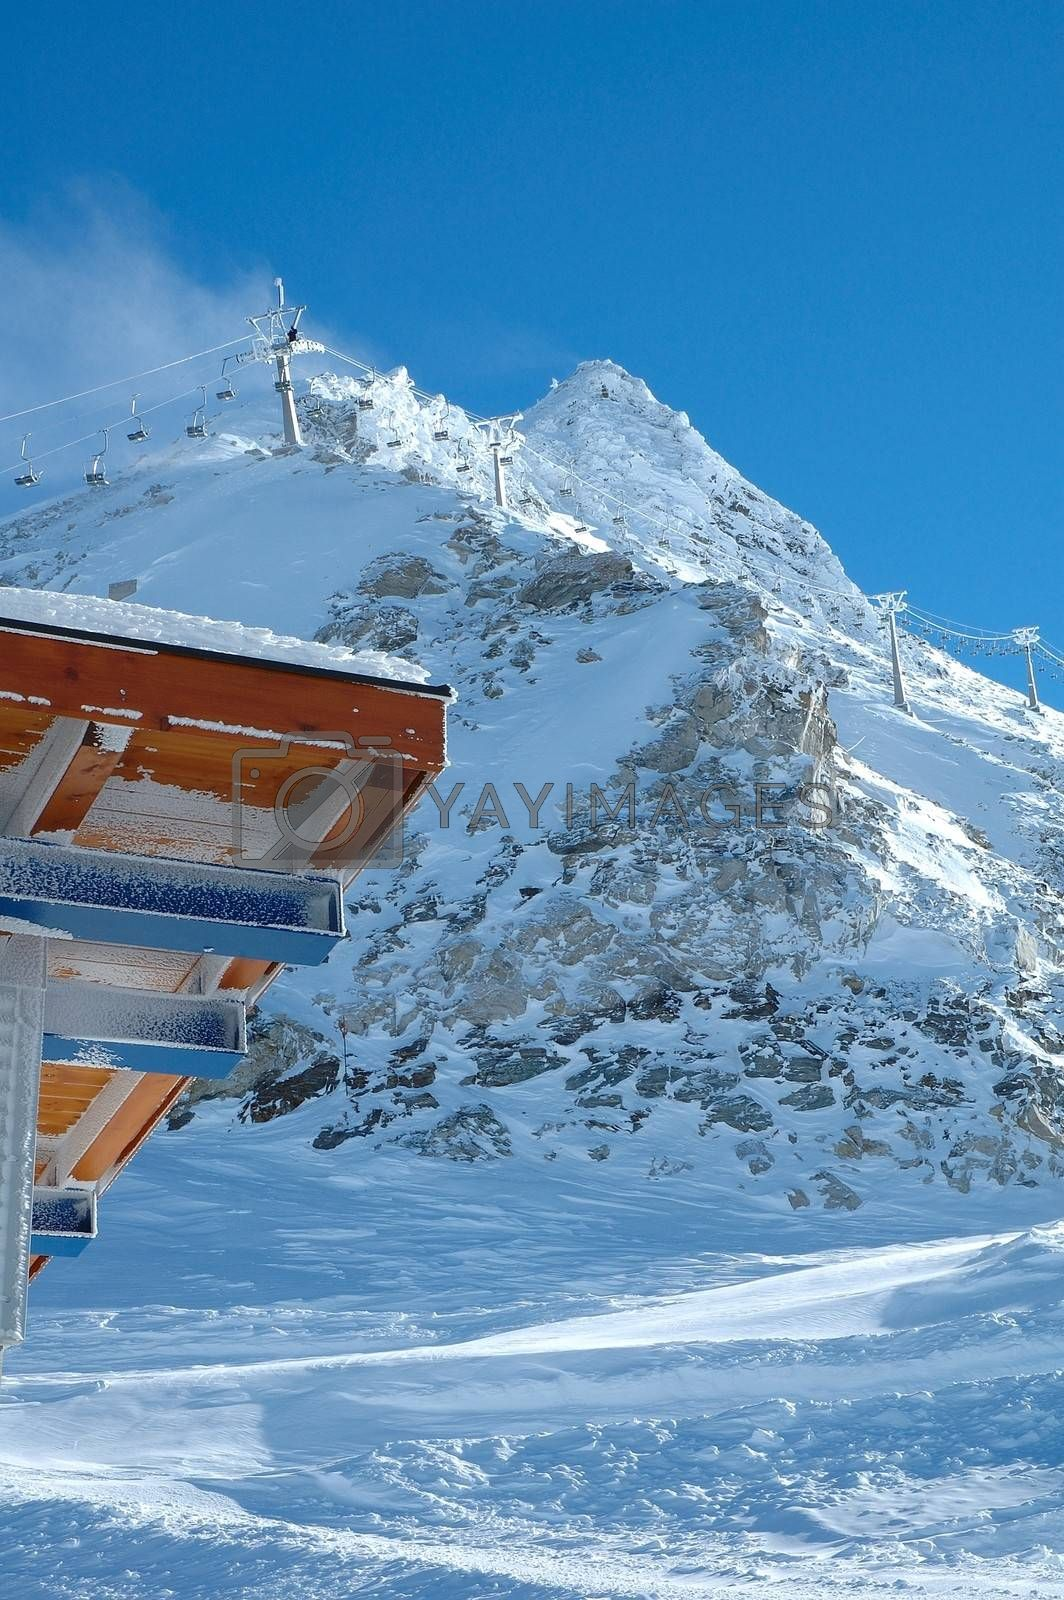 Peak roof and ski lift nearby Hintertux in Zillertal valley in Austria